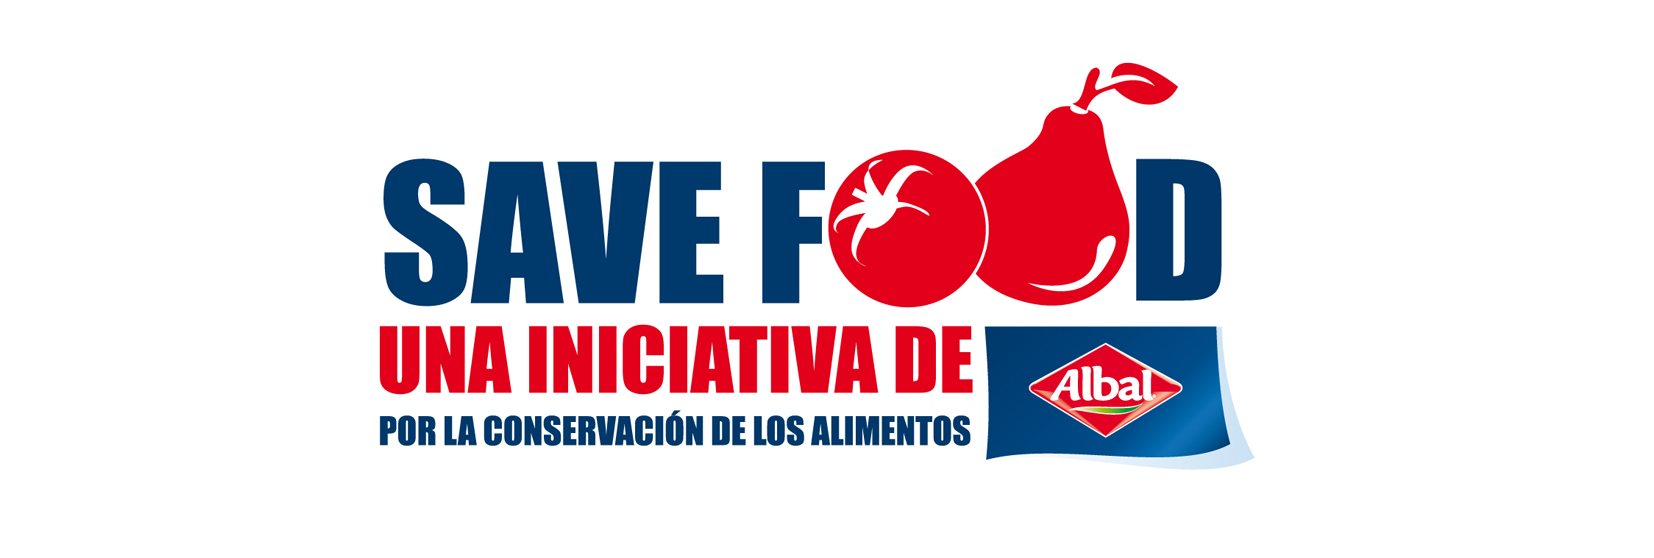 Logo iniciativa Save Food de Albal®